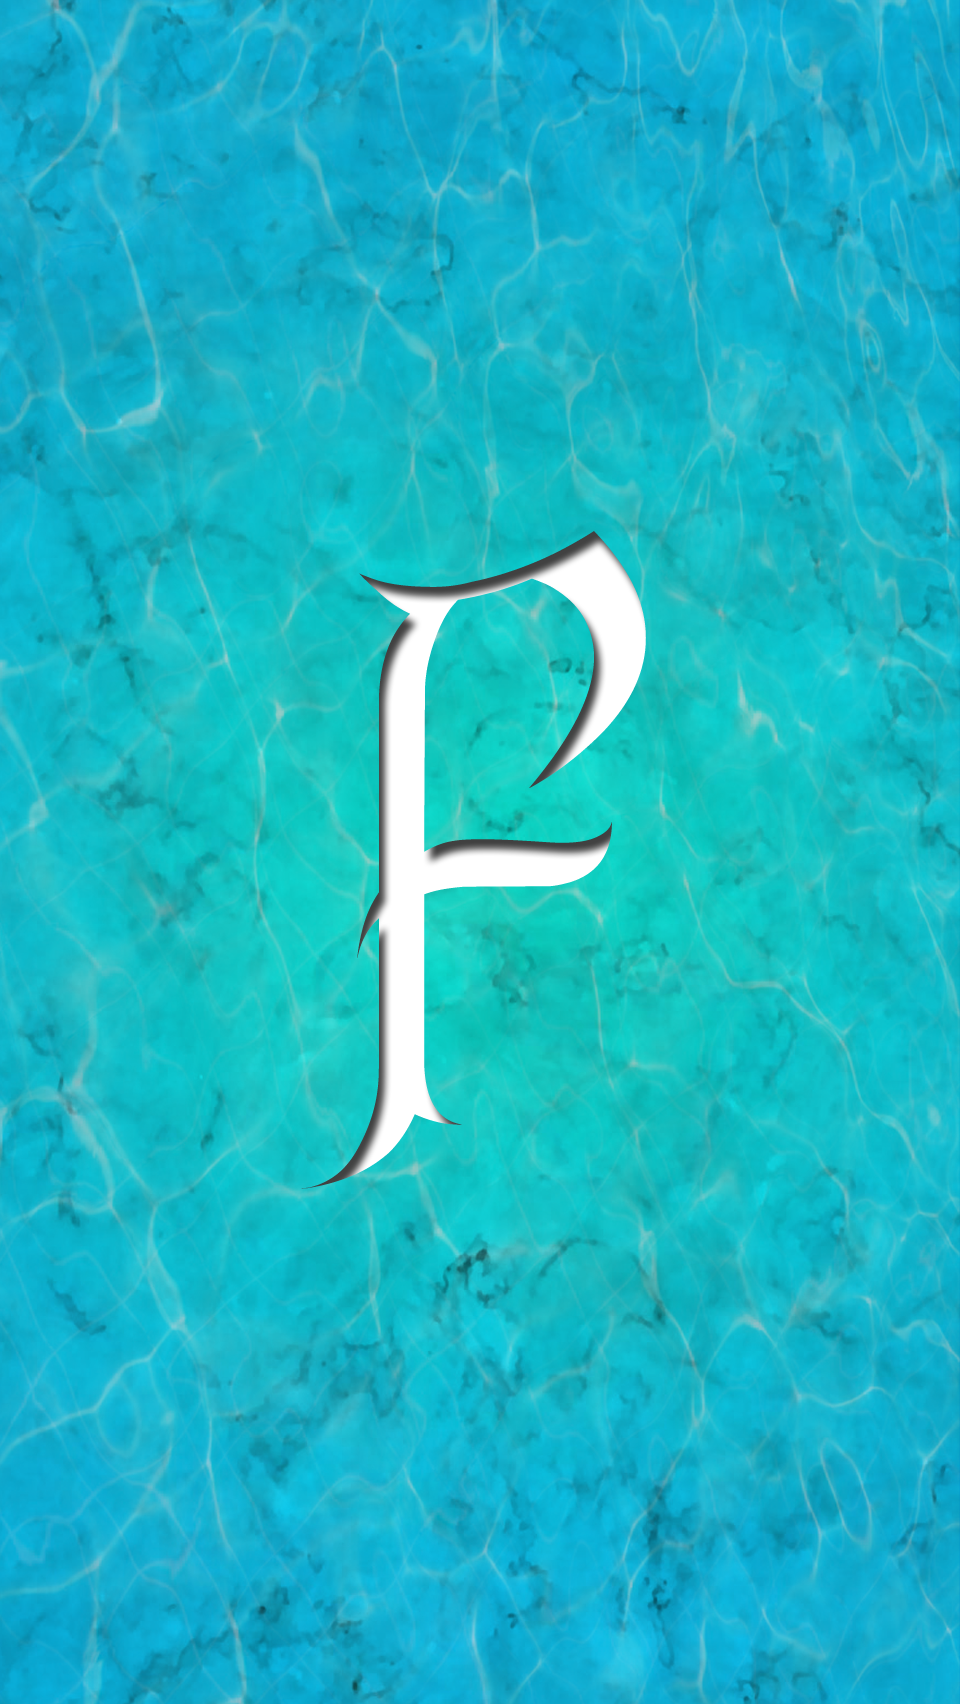 Simple Wallpaper Mobile Letter - Letter-F-Wallpapers-Mobile-13  Collection_297235.png